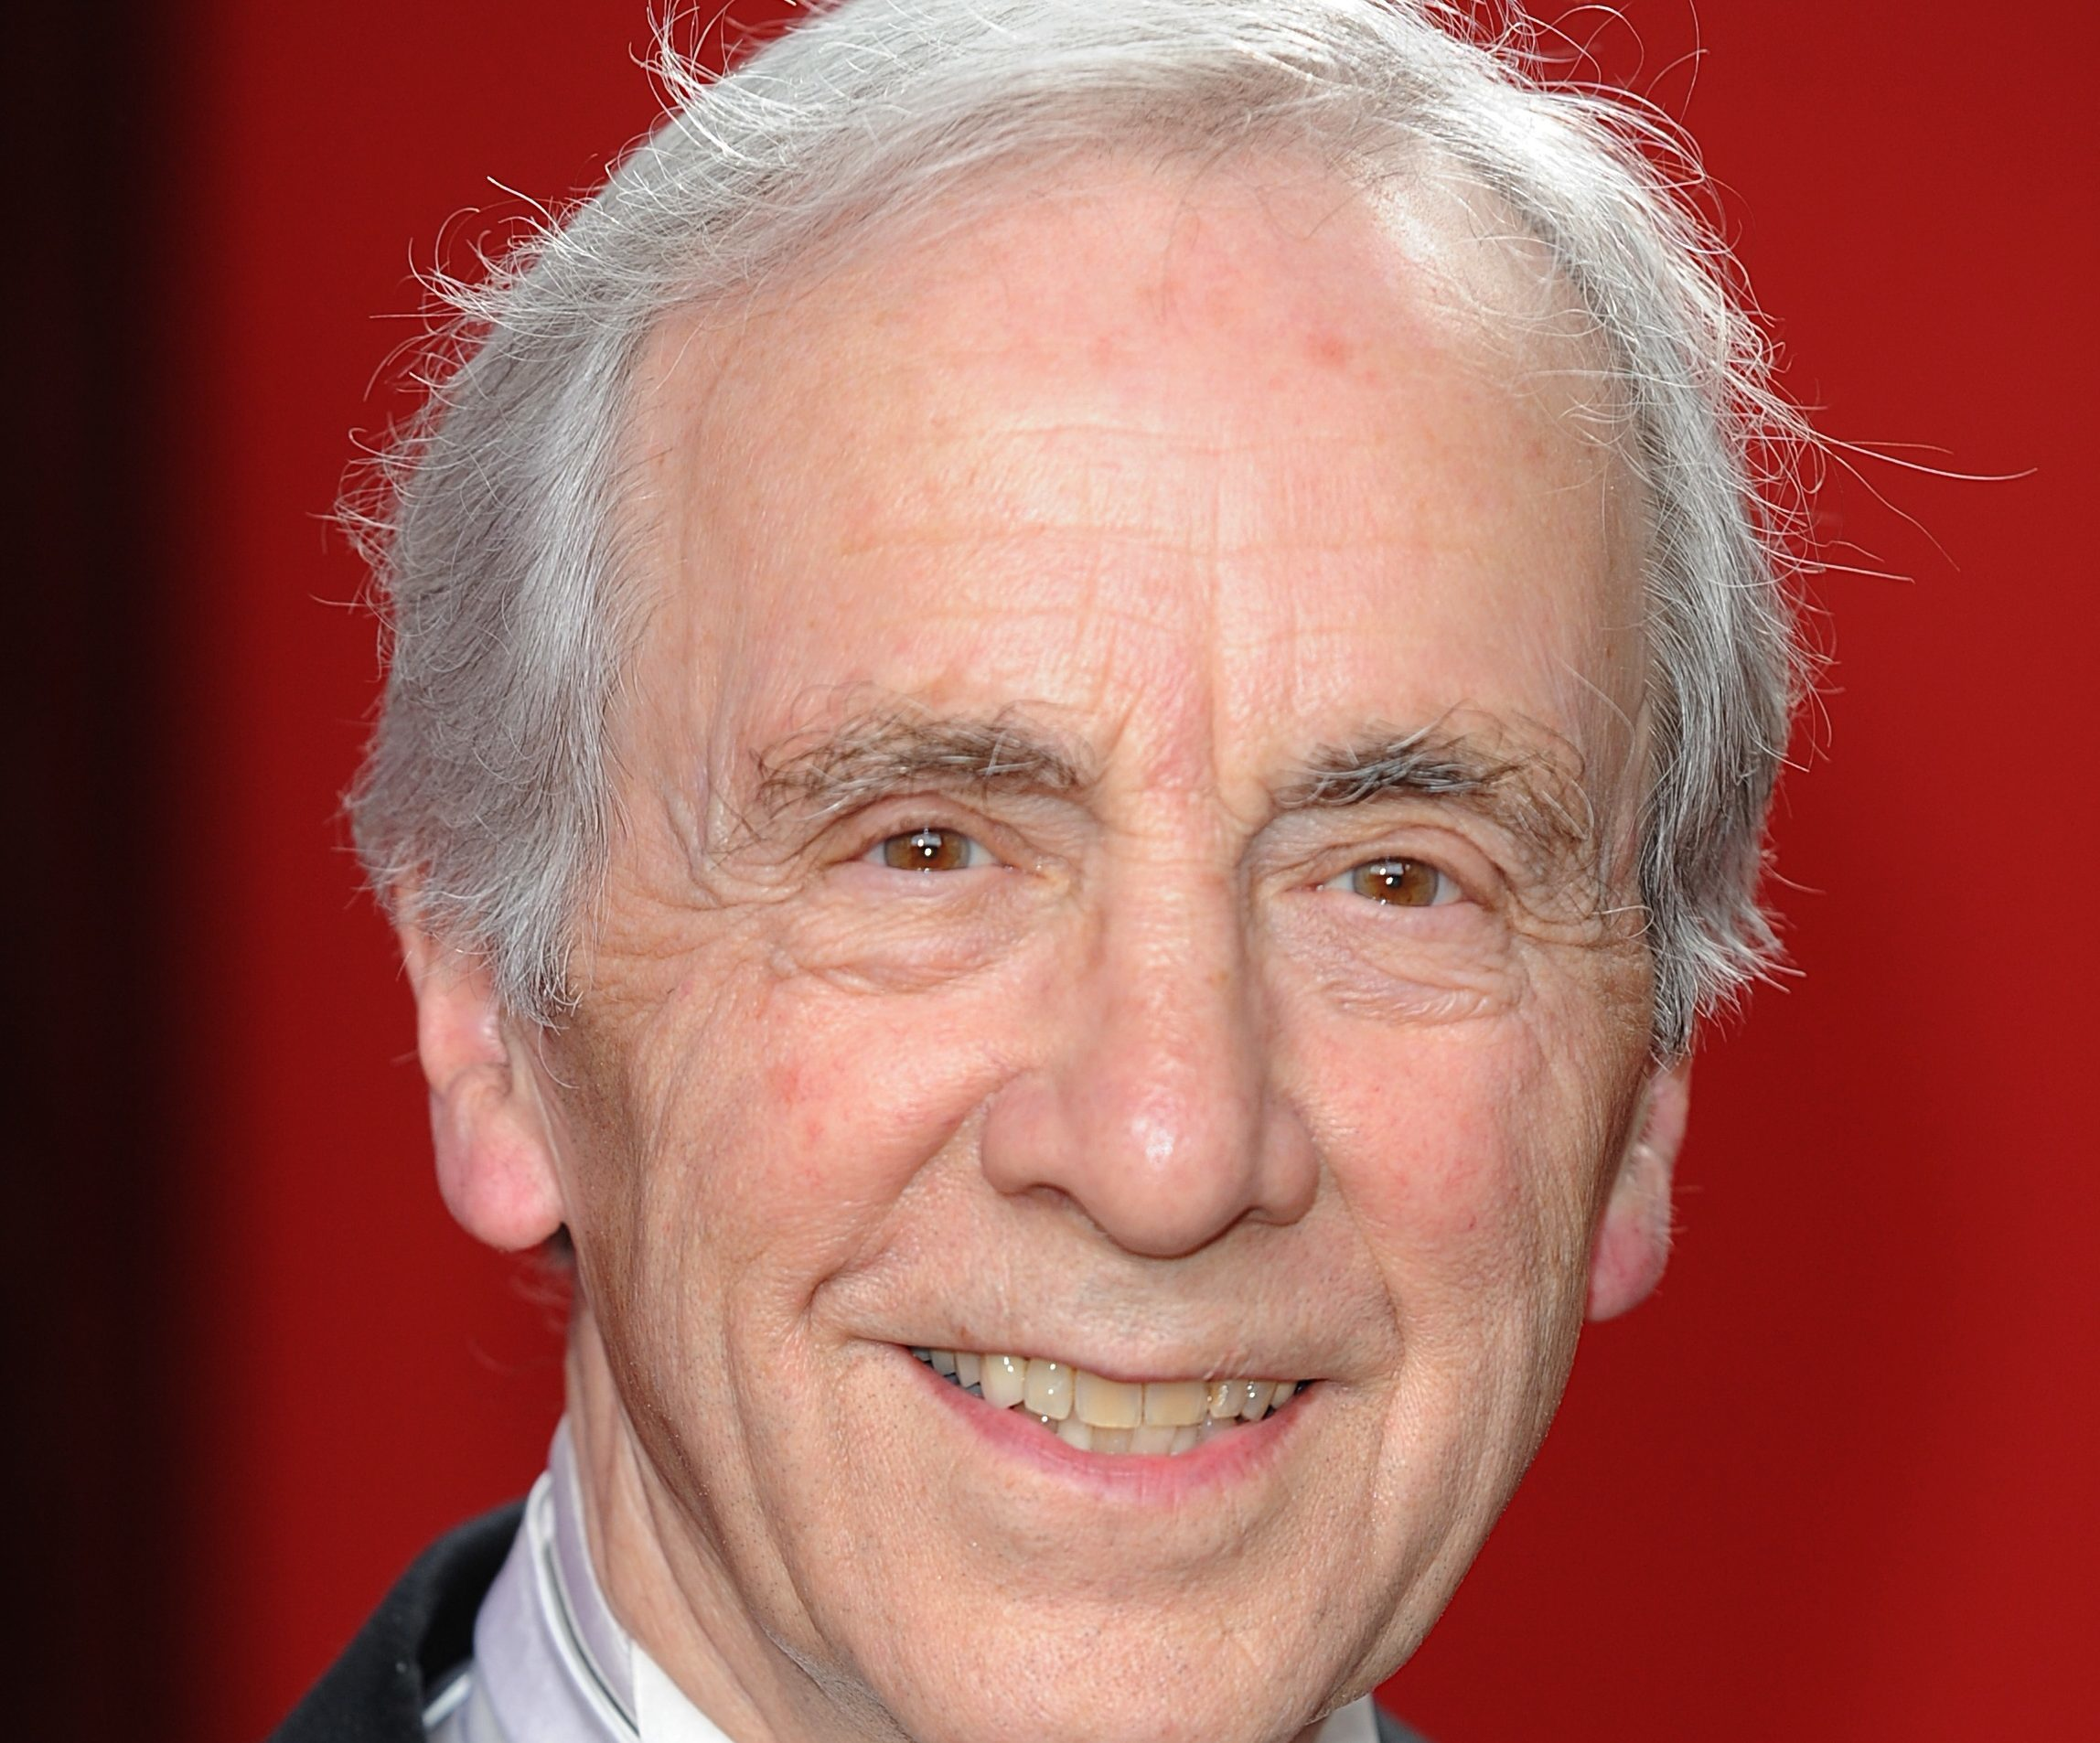 Andrew Sachs at an awards event in 2009.